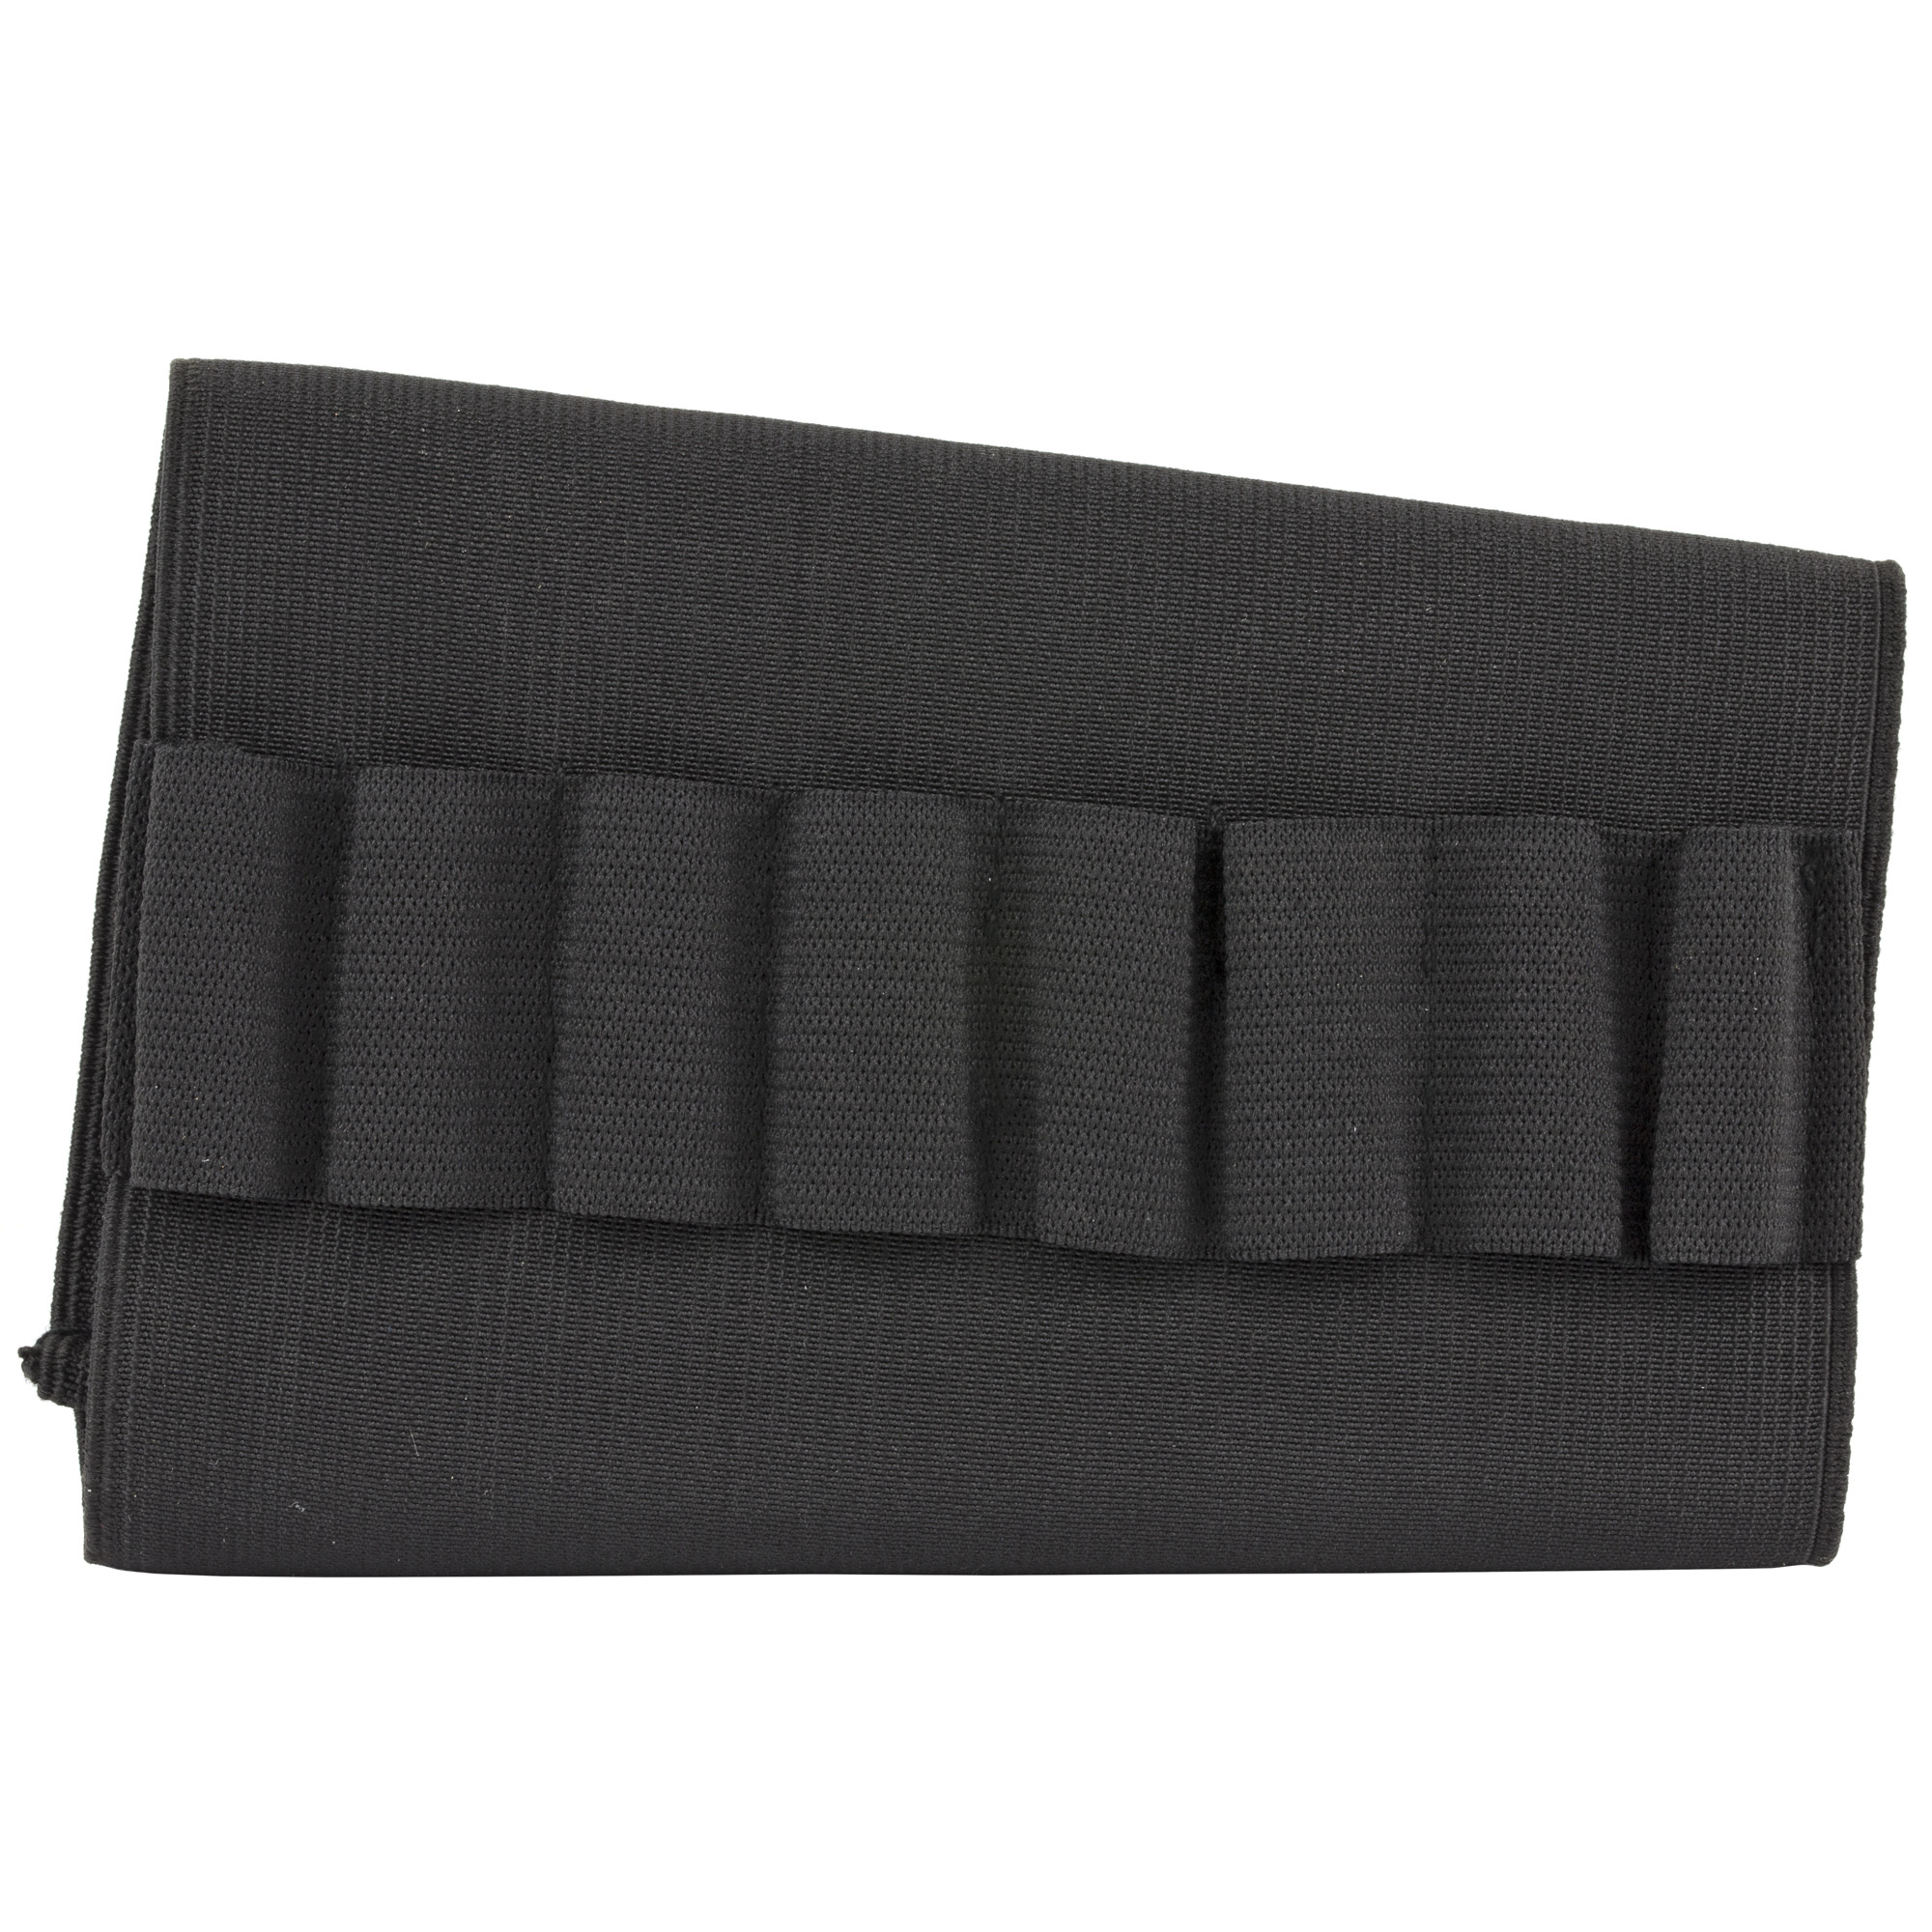 Here is a great way to carry some extra ammo while in the field! Just slip this elastic carrier from Bulldog Cases over the stock of your rifle. Elastic loops hold eight rounds of ammo close at hand for immediate use without allowing rattles.